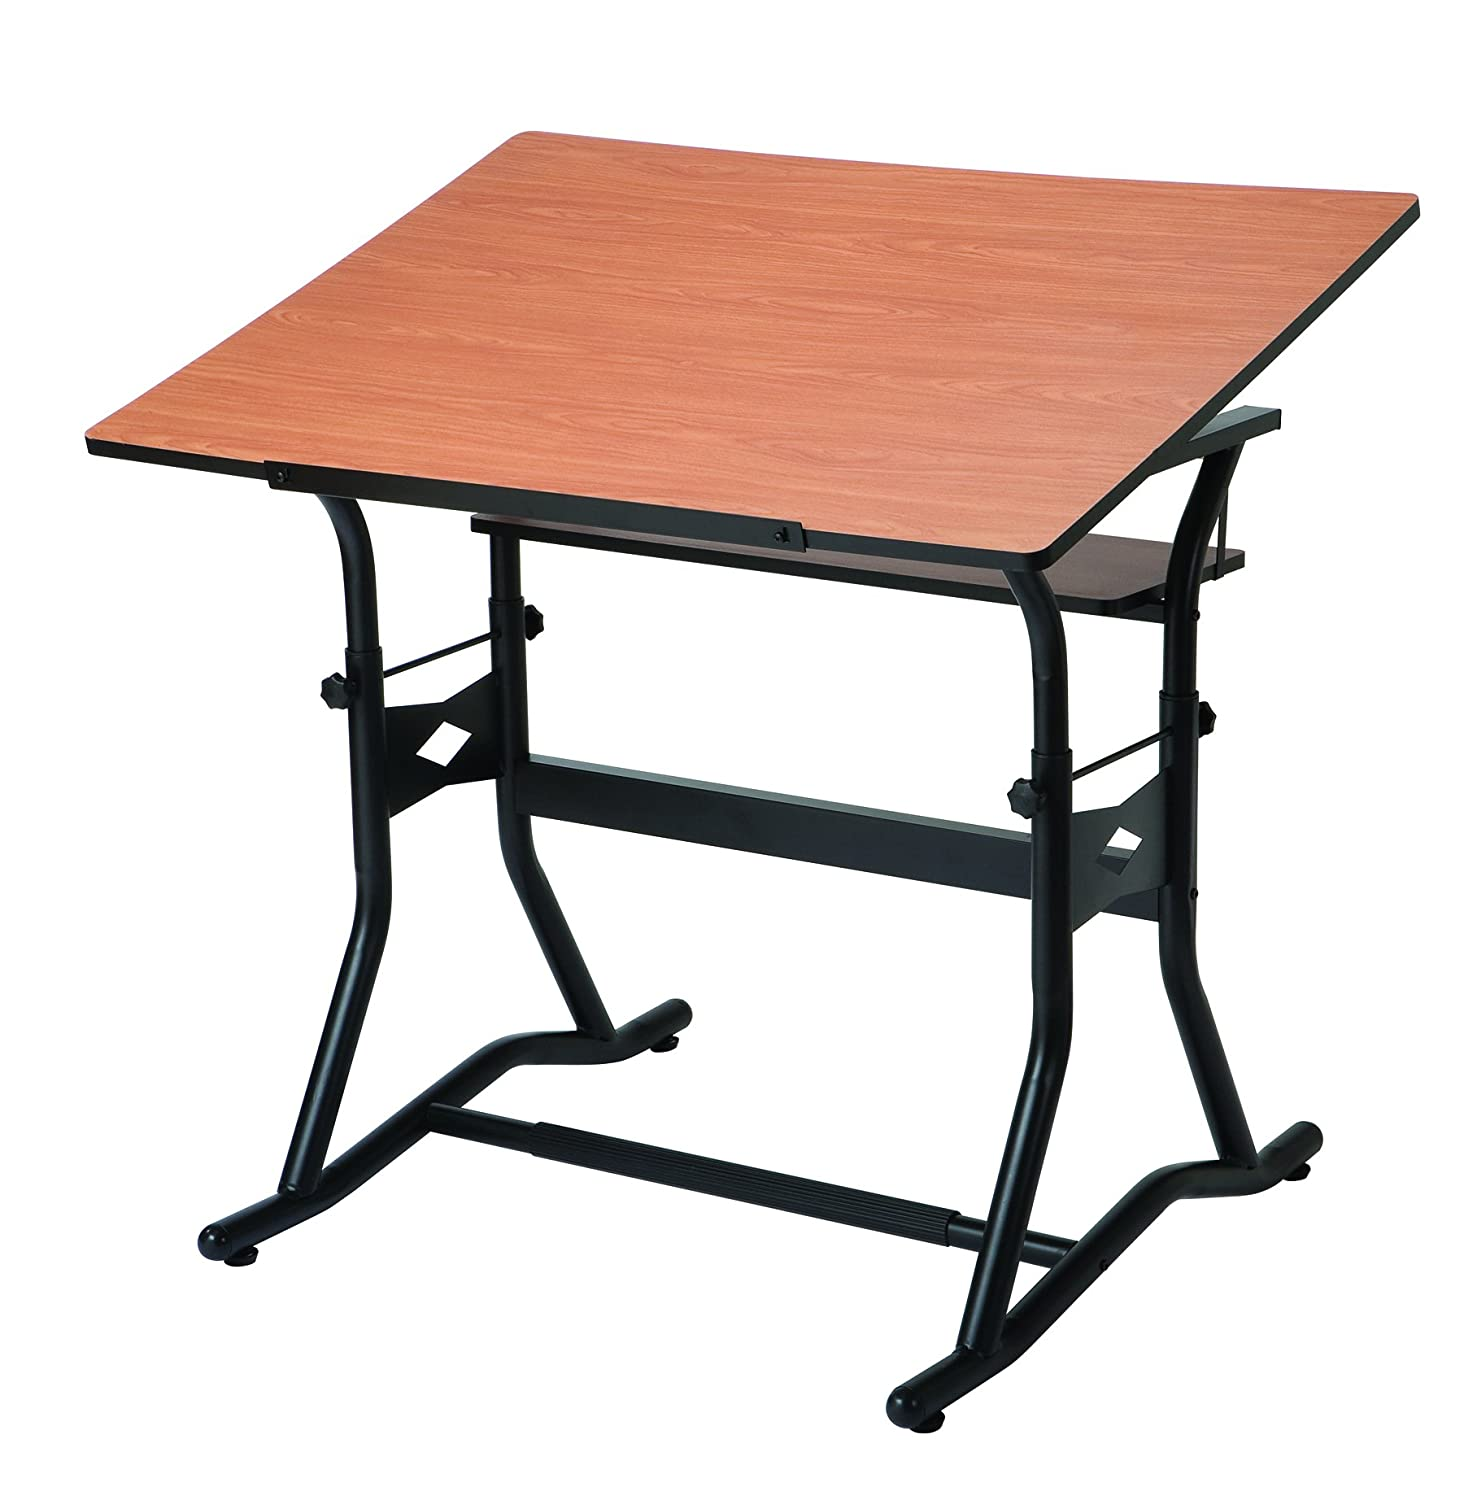 Alvin CM50-3-WBR CraftMaster III Drafting - Drawing - and Art Table - Black Base Cherry Top 30 inches x 42 inches